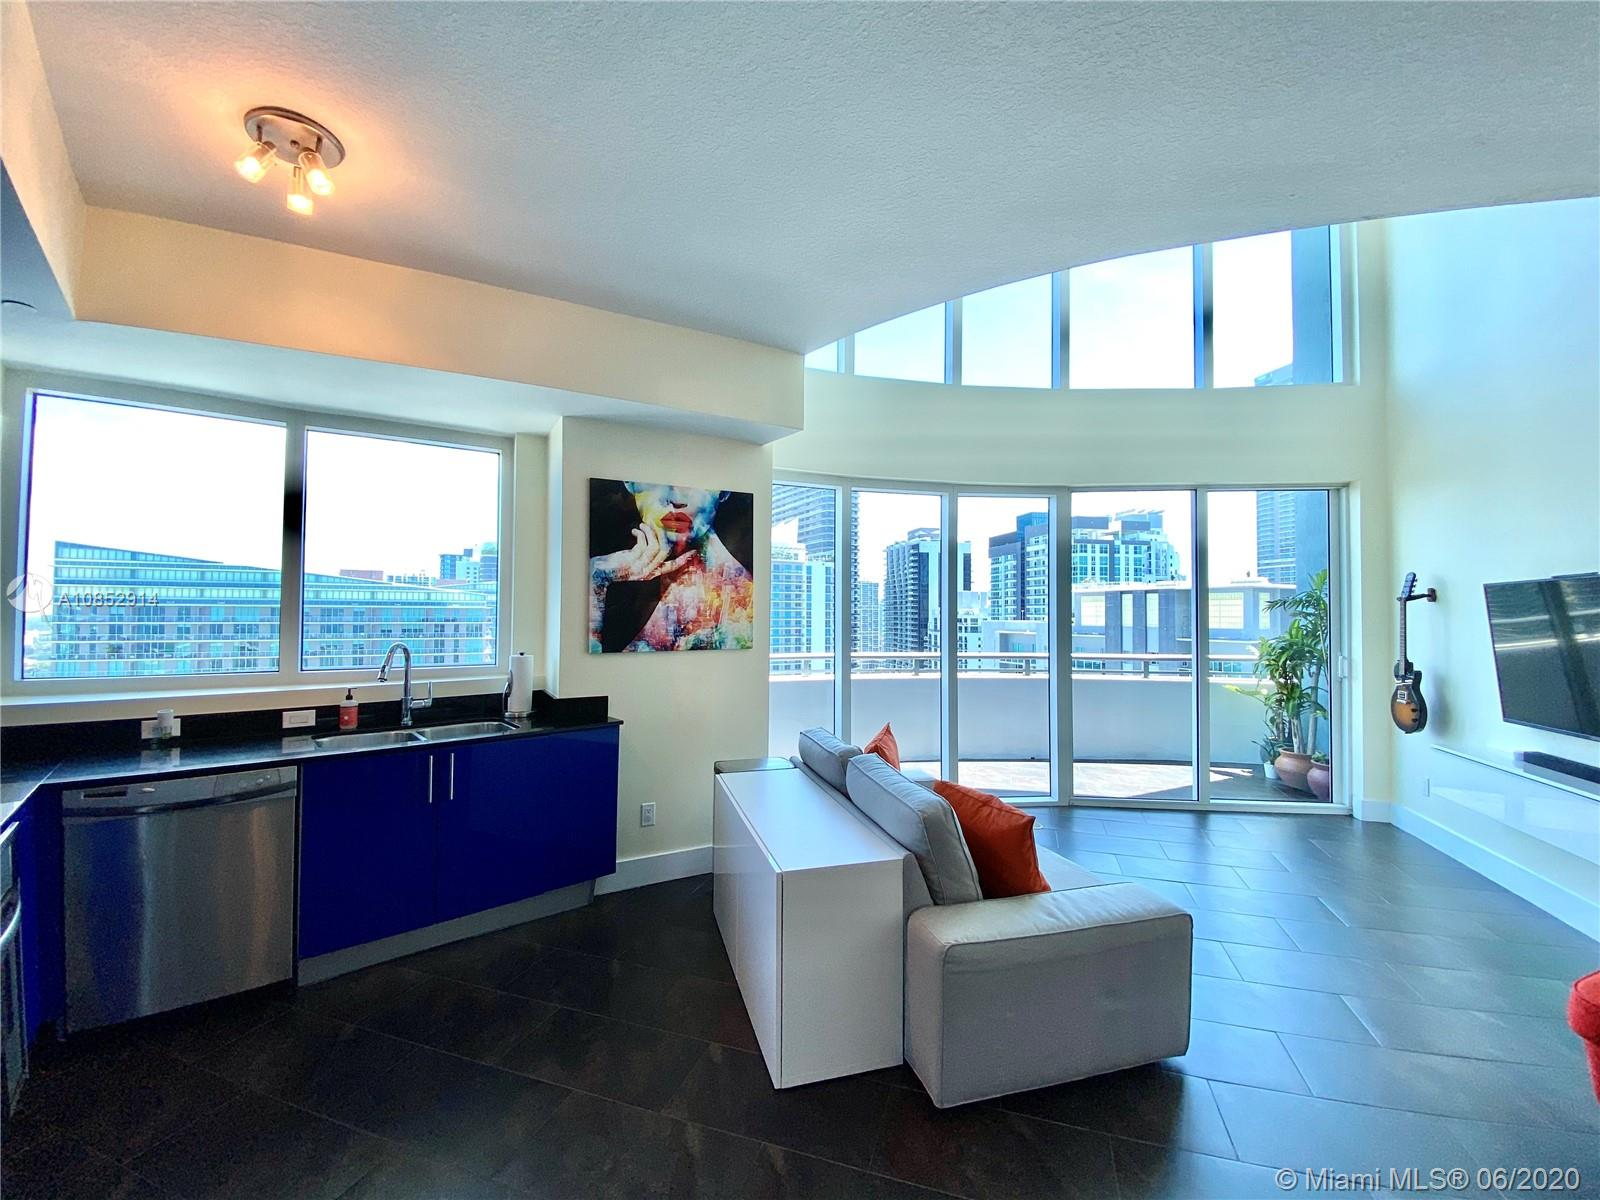 60 SW 13th St # 3426, Miami, Florida 33130, 3 Bedrooms Bedrooms, ,3 BathroomsBathrooms,Residential,For Sale,60 SW 13th St # 3426,A10852914